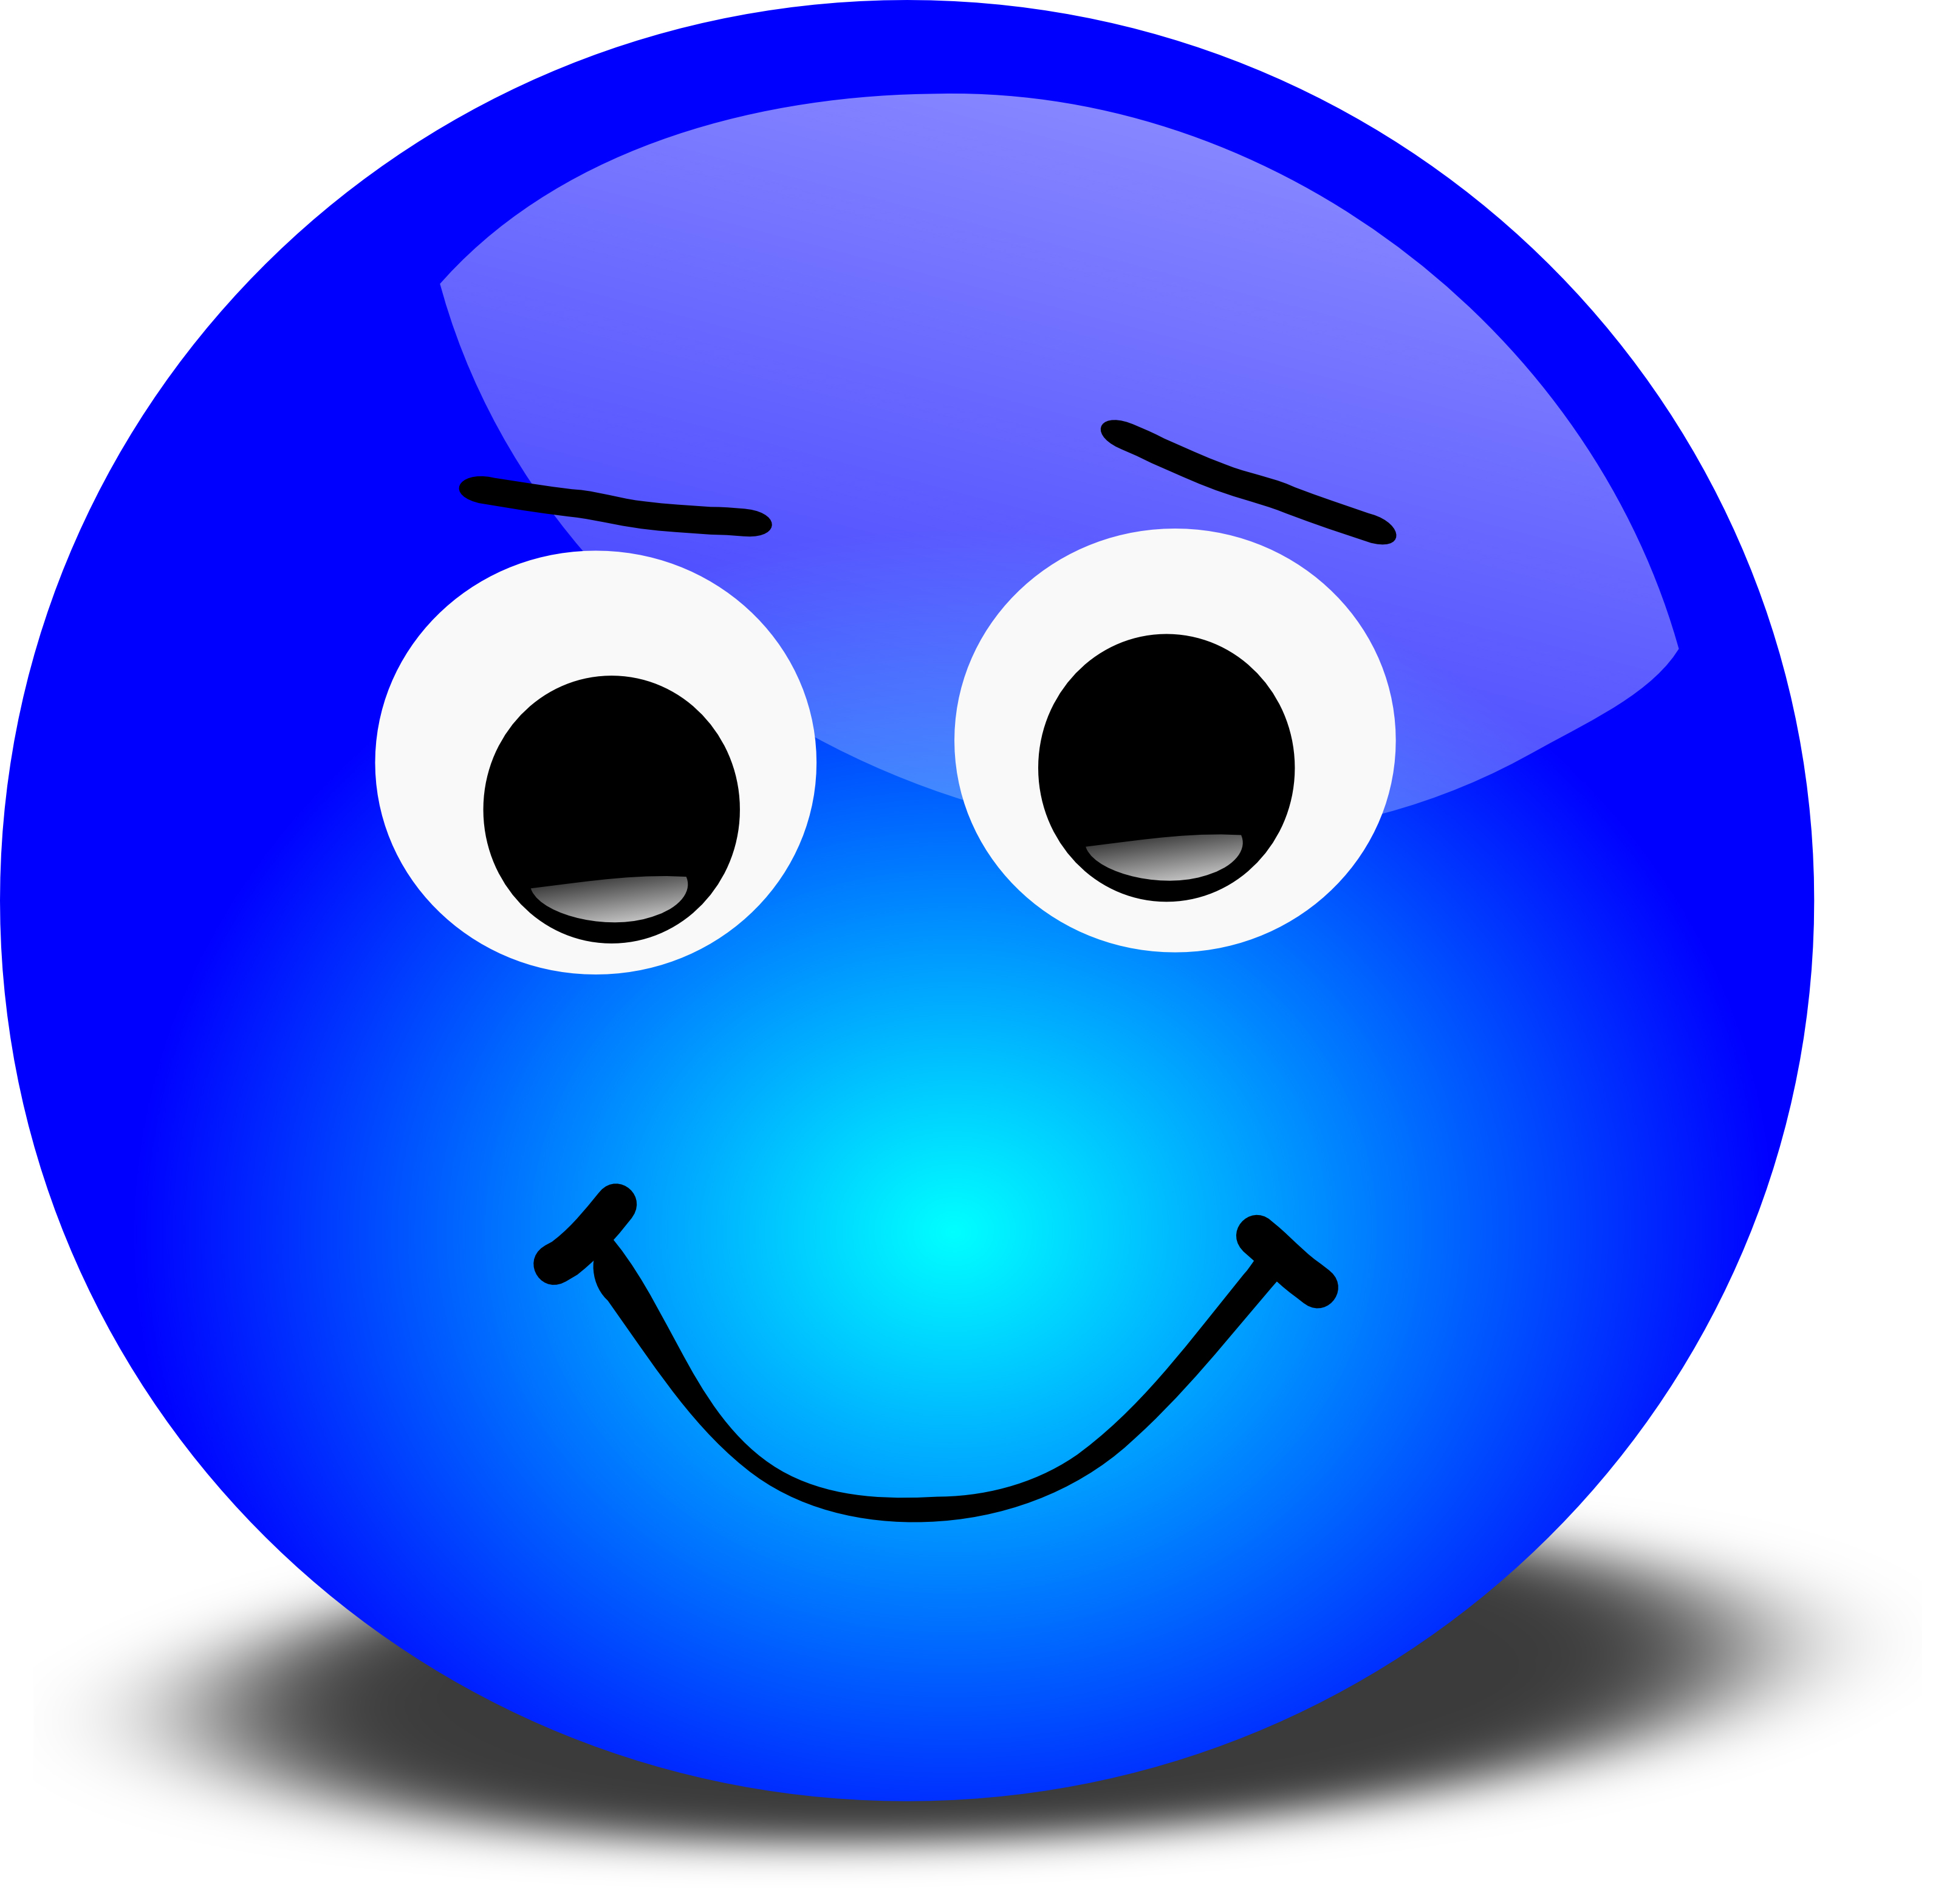 Free clipart smiley face thumbs up picture library download Smiley Face Thumbs Up Thank You | Clipart Panda - Free Clipart Images picture library download